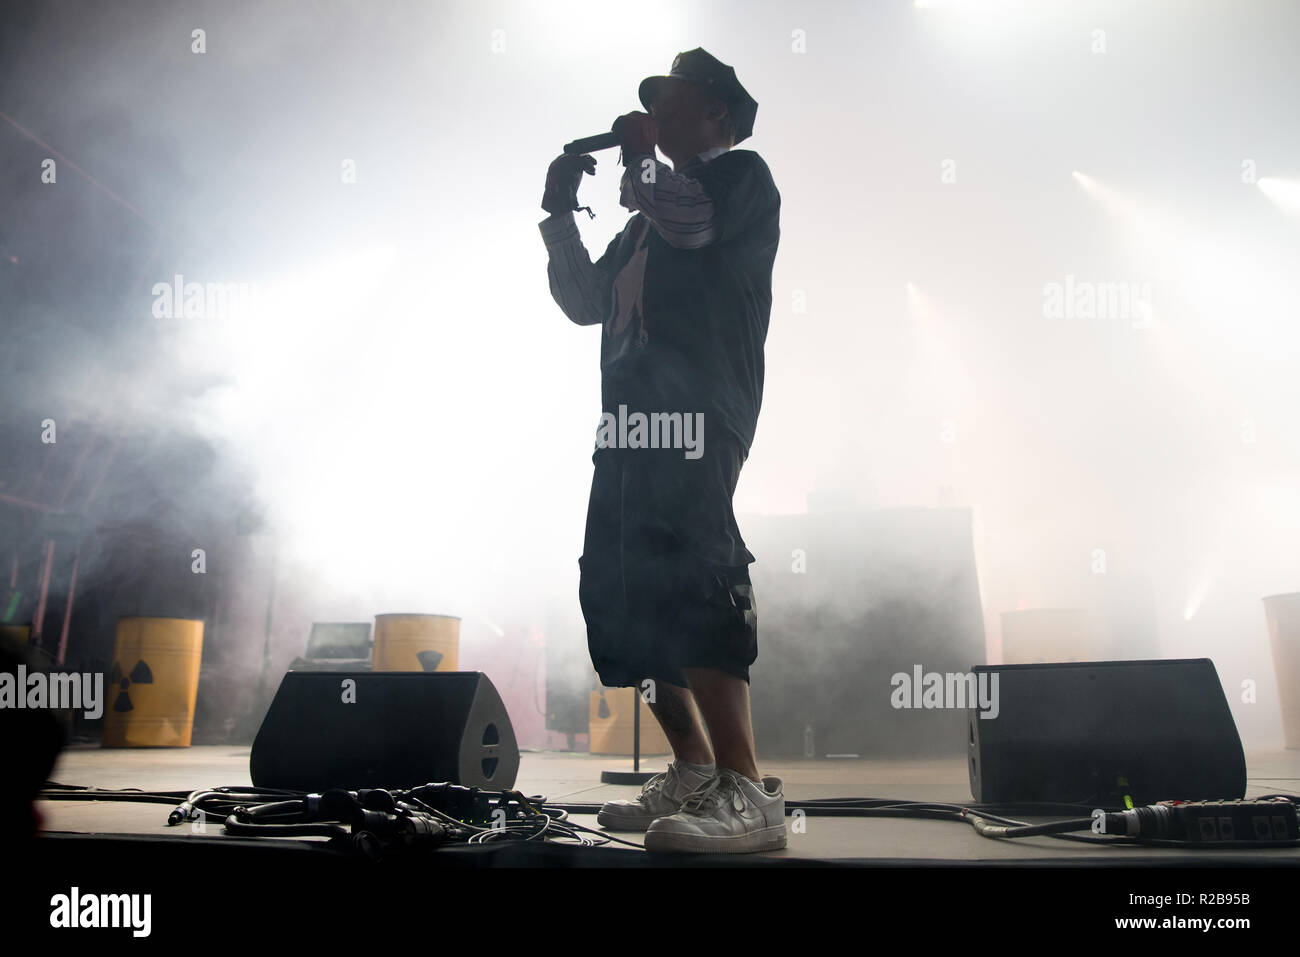 BARCELONA - JUN 15: Yung Lean (rap trap band) perform in concert at Sonar Festival on June 15, 2018 in Barcelona, Spain. - Stock Image